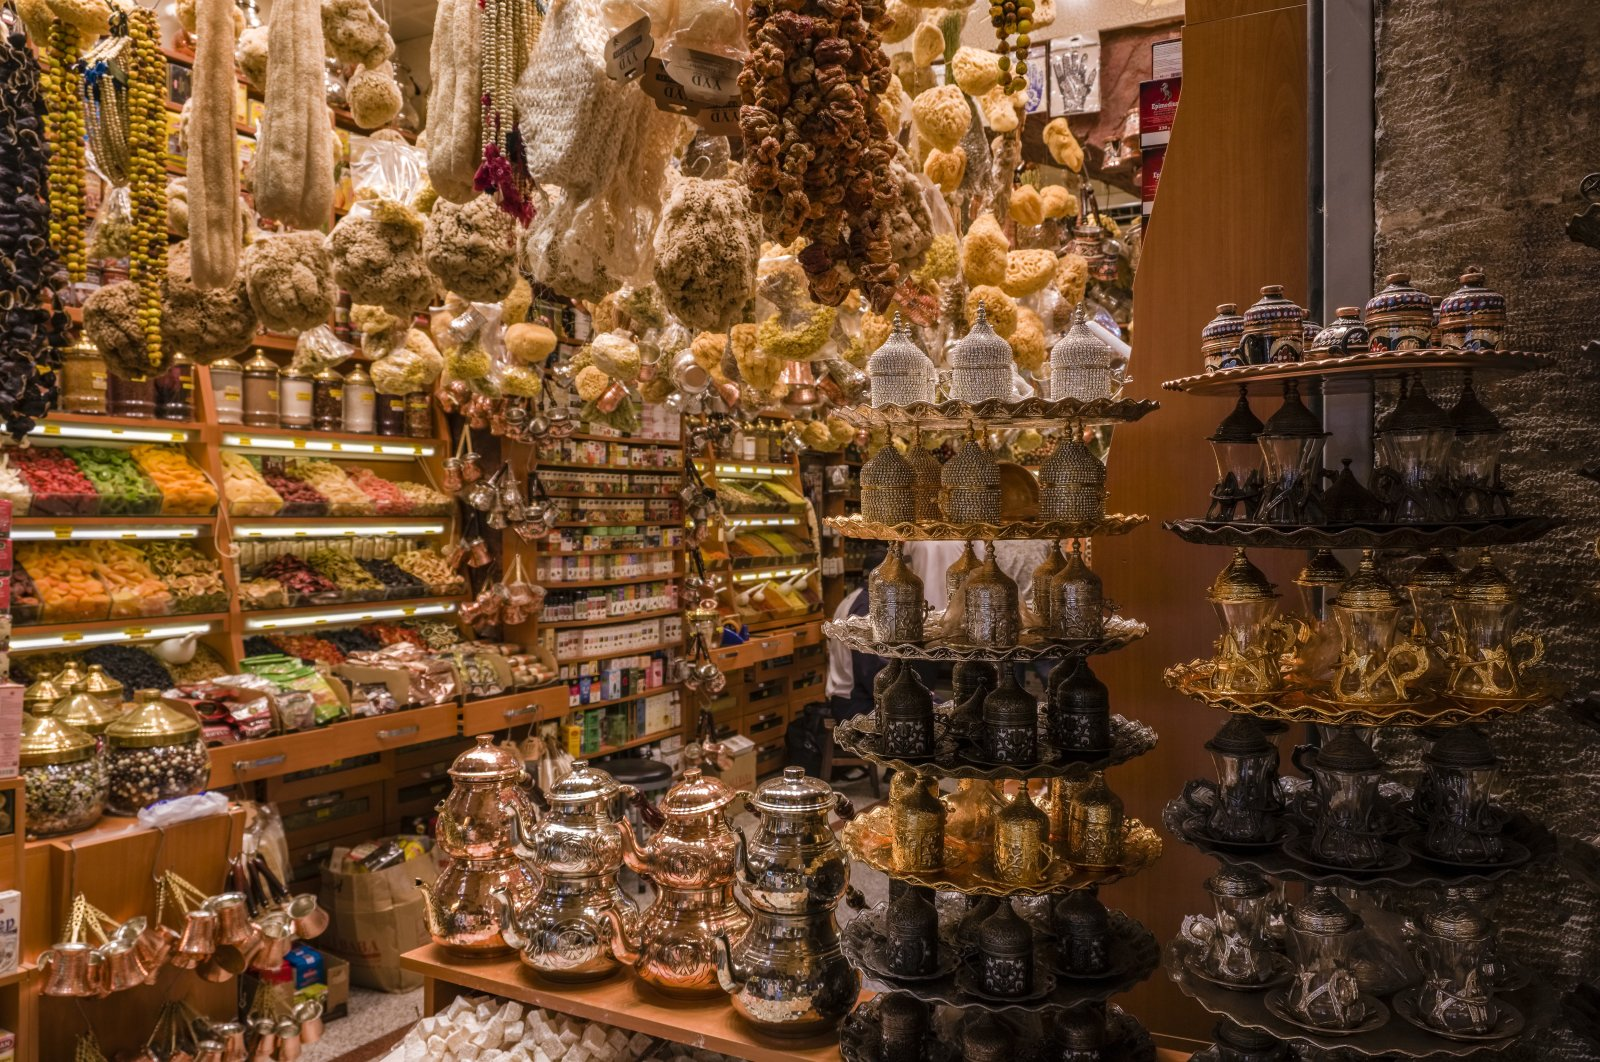 Big variety of spices, tea dishes and kitchen accessories are seen at a shop inside Spice Bazaar, Istanbul, Turkey, Oct. 15, 2019. (Photo by Getty Images)